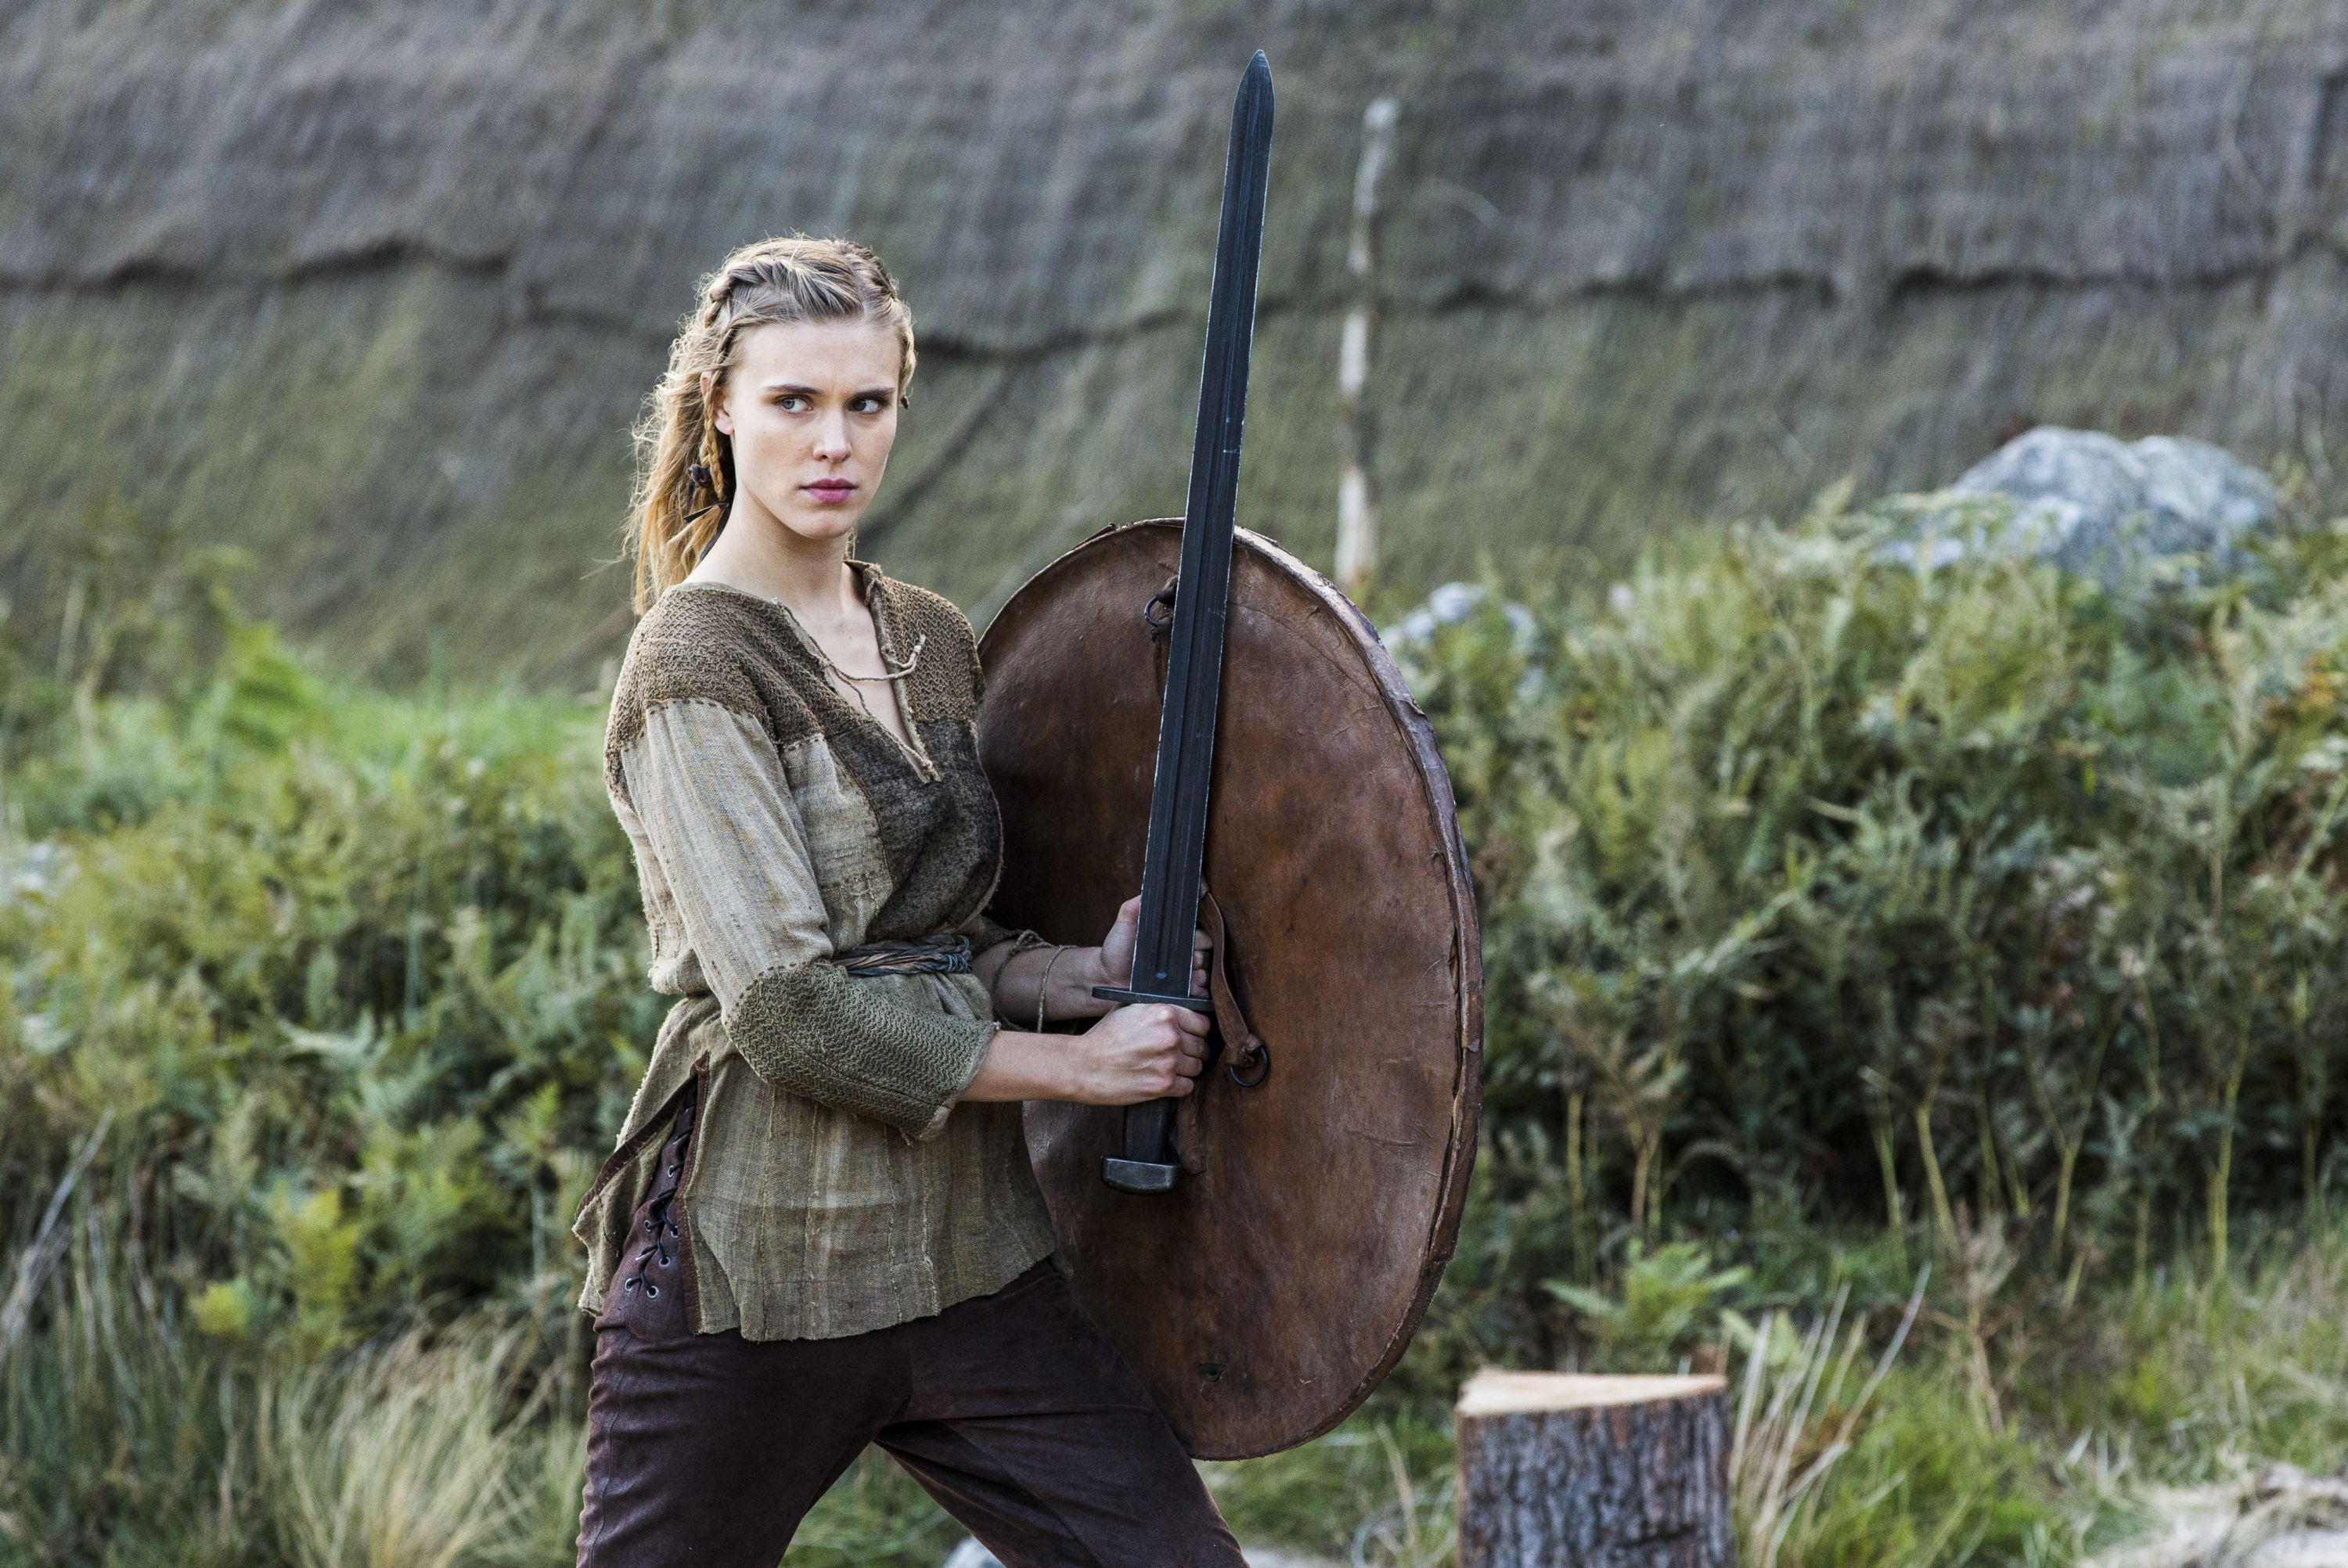 Index of /wp-content/gallery/vikings